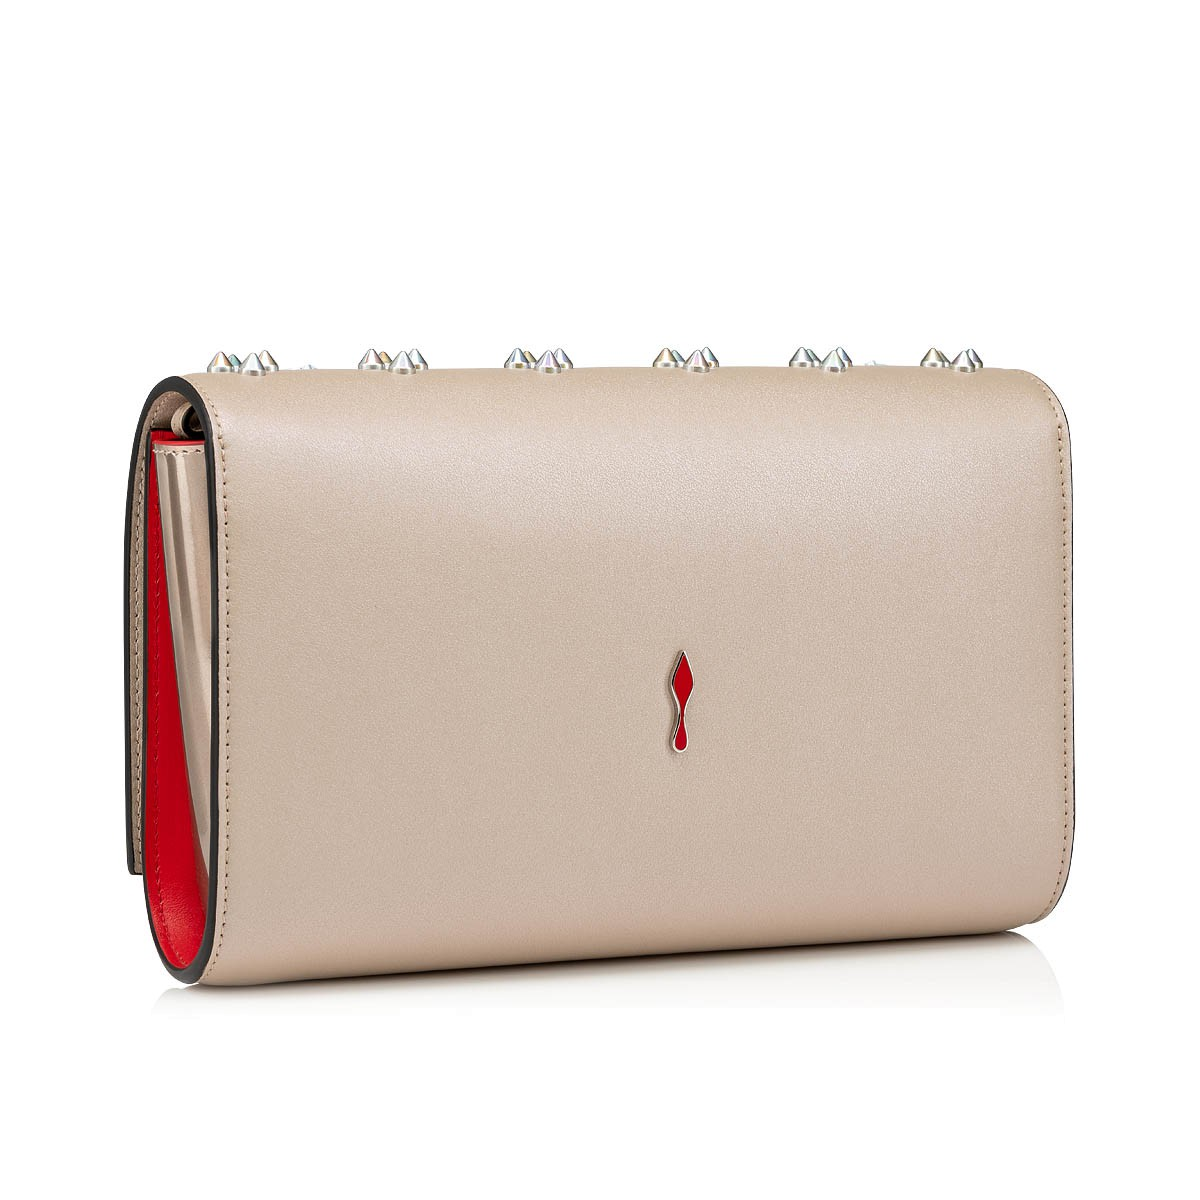 包款 - Paloma Clutch Creative Leather - Christian Louboutin